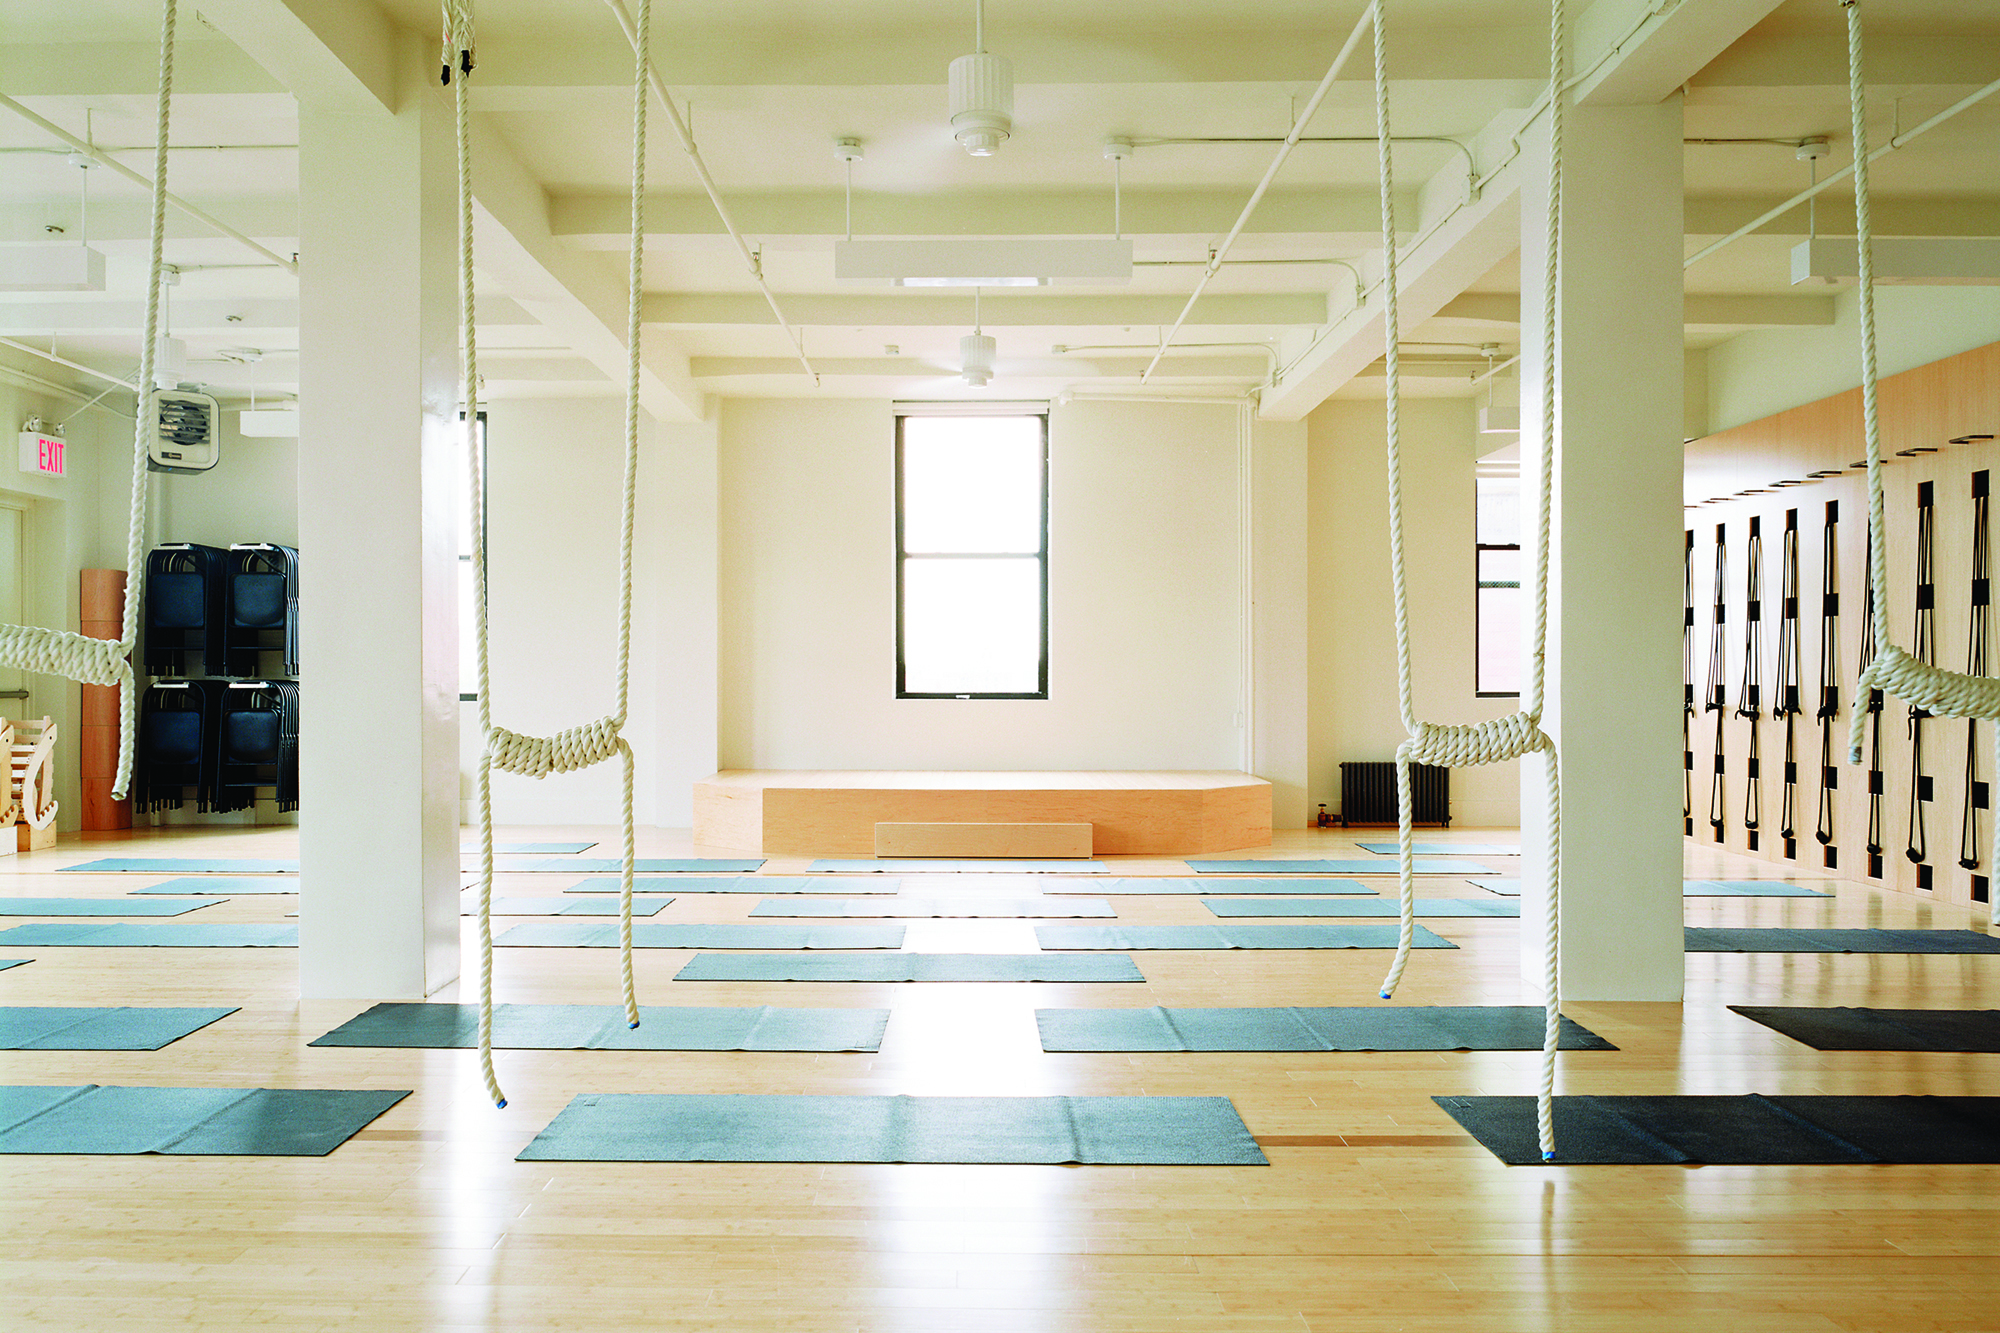 Best Yoga In Nyc From Outdoor Yoga To Zen Yoga Studios